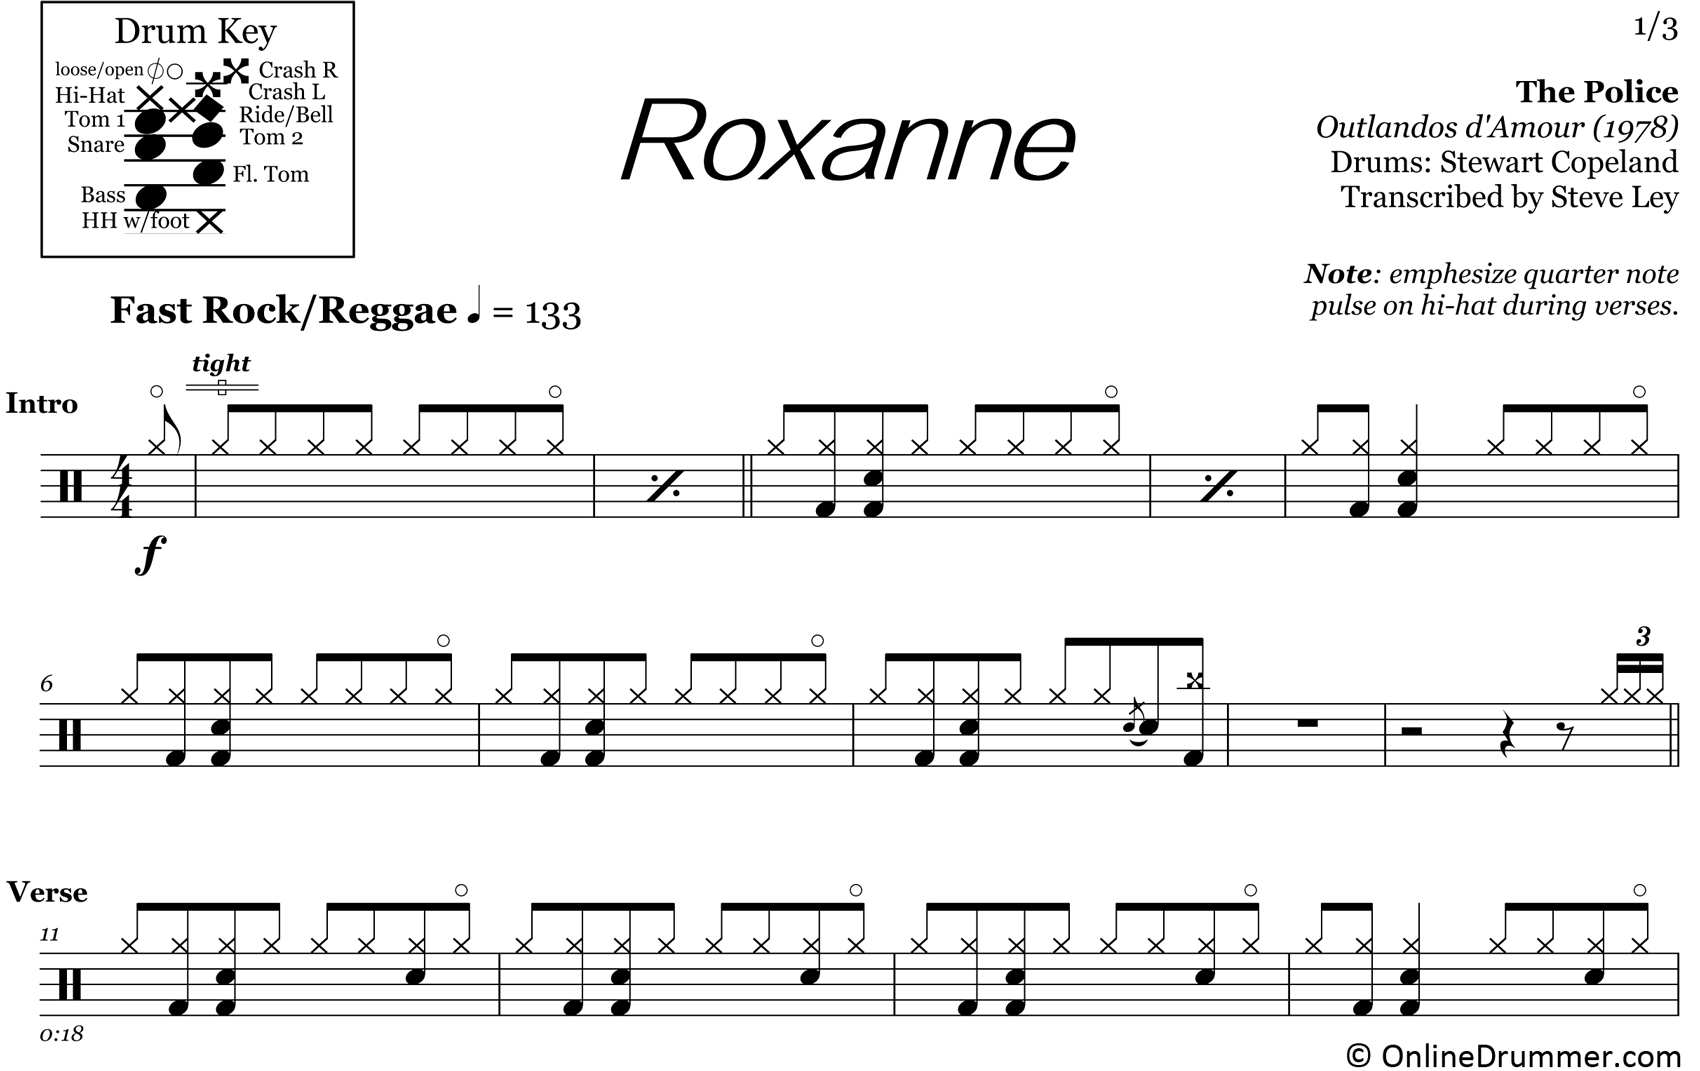 Roxanne - The Police - Drum Sheet Music